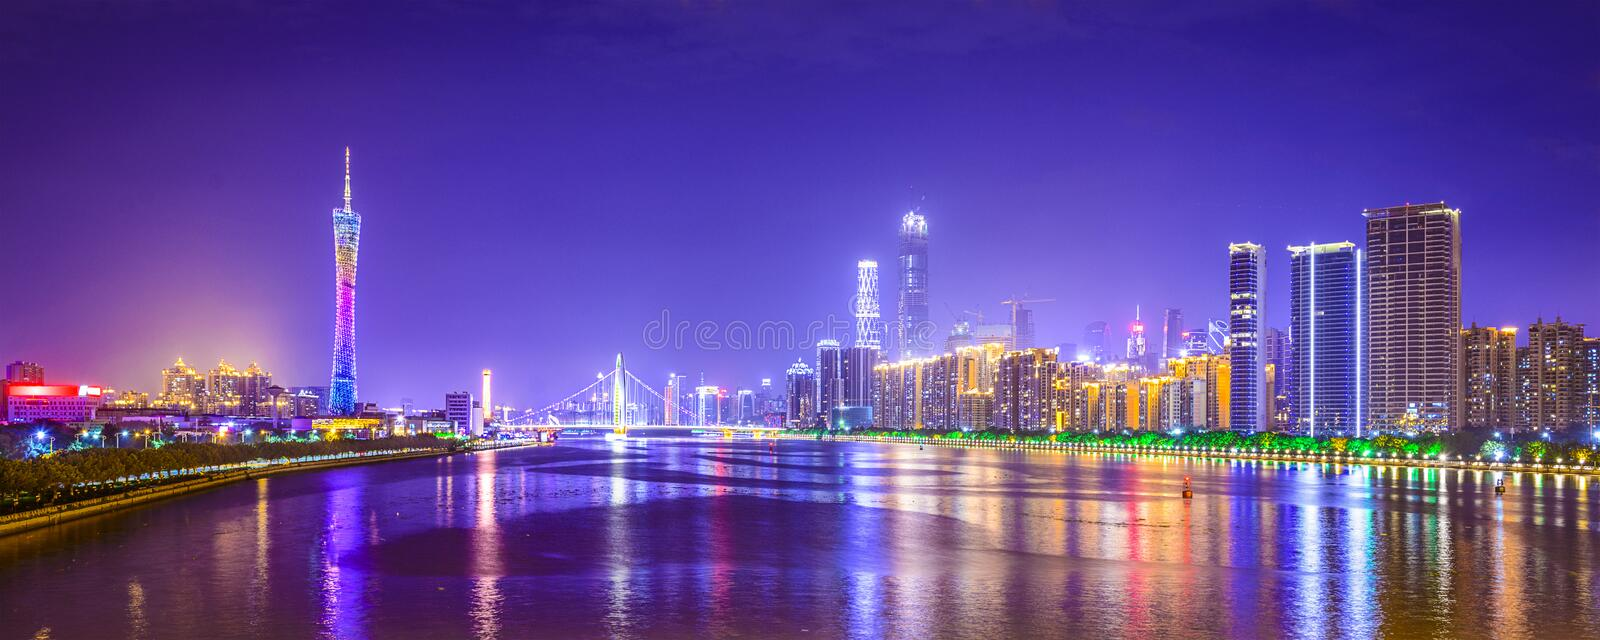 Guangzhou, China stockfoto